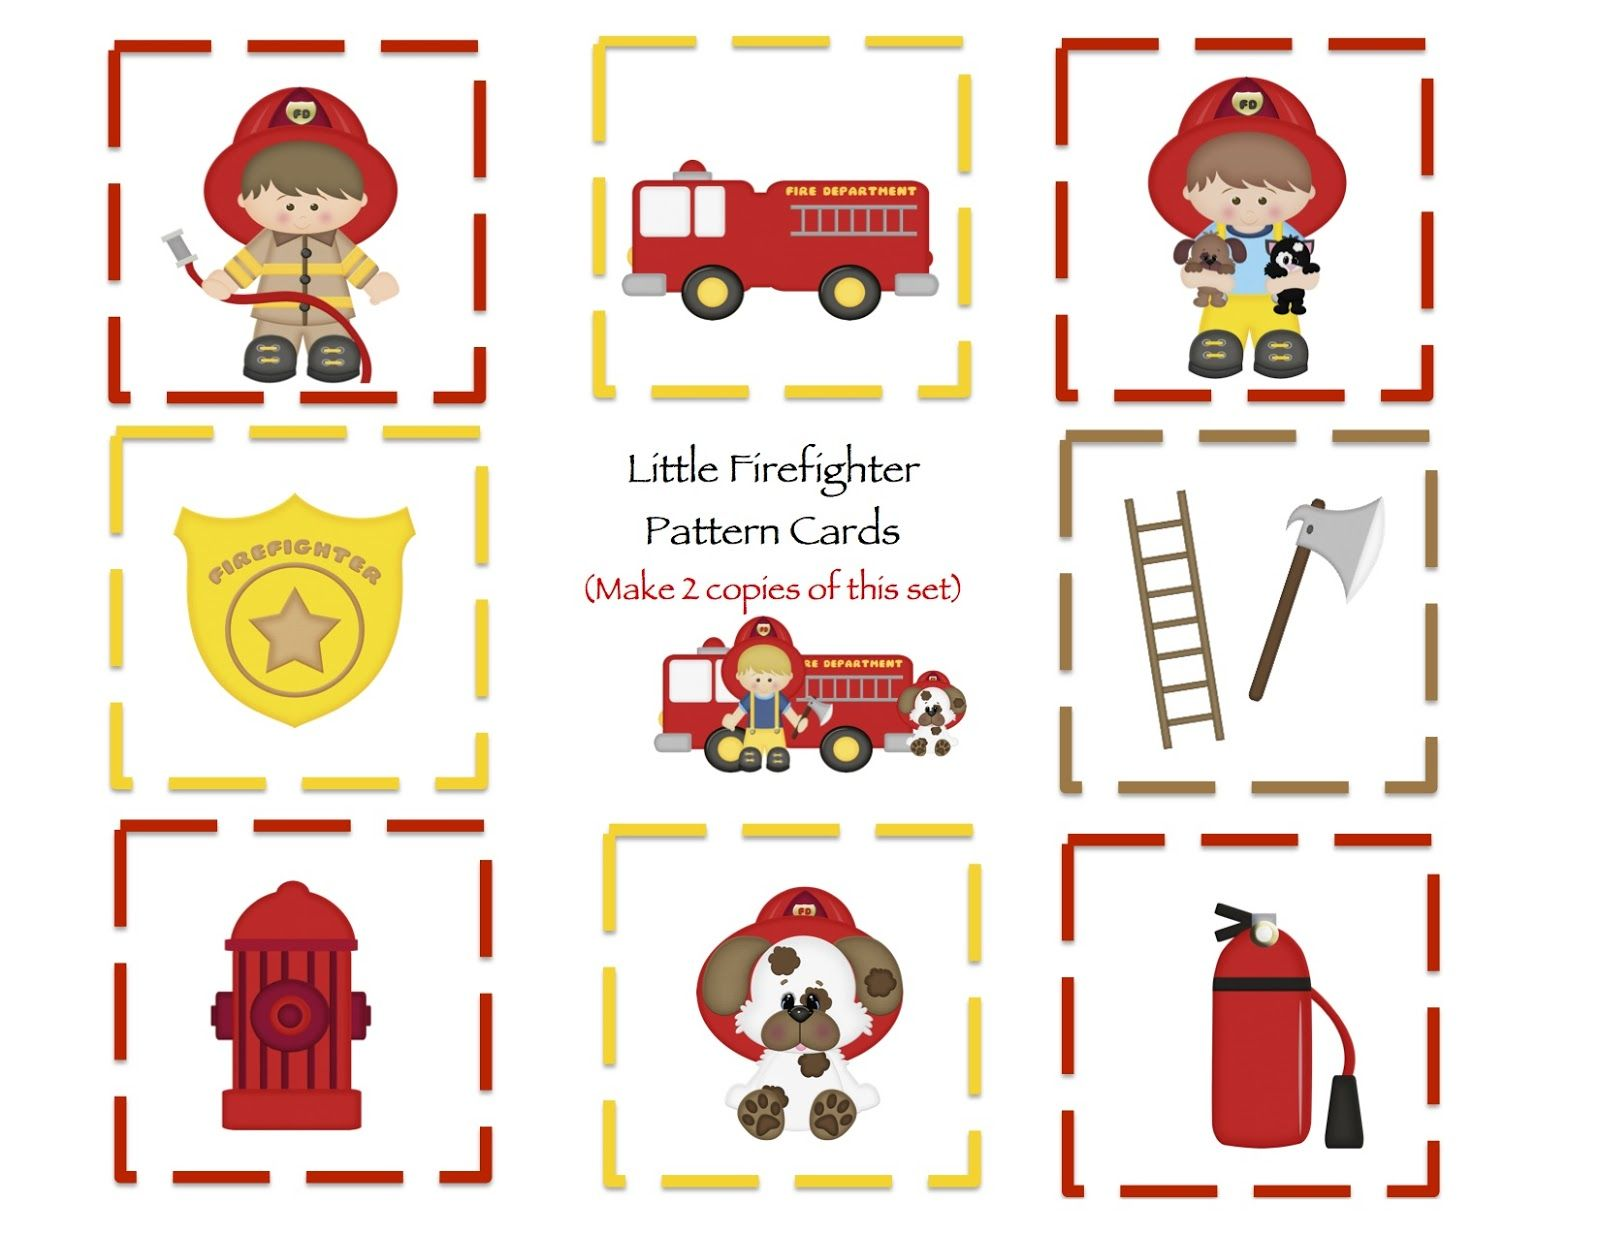 Little Firefighters 9 Pattern Cards 1 600 1 236 Pixels